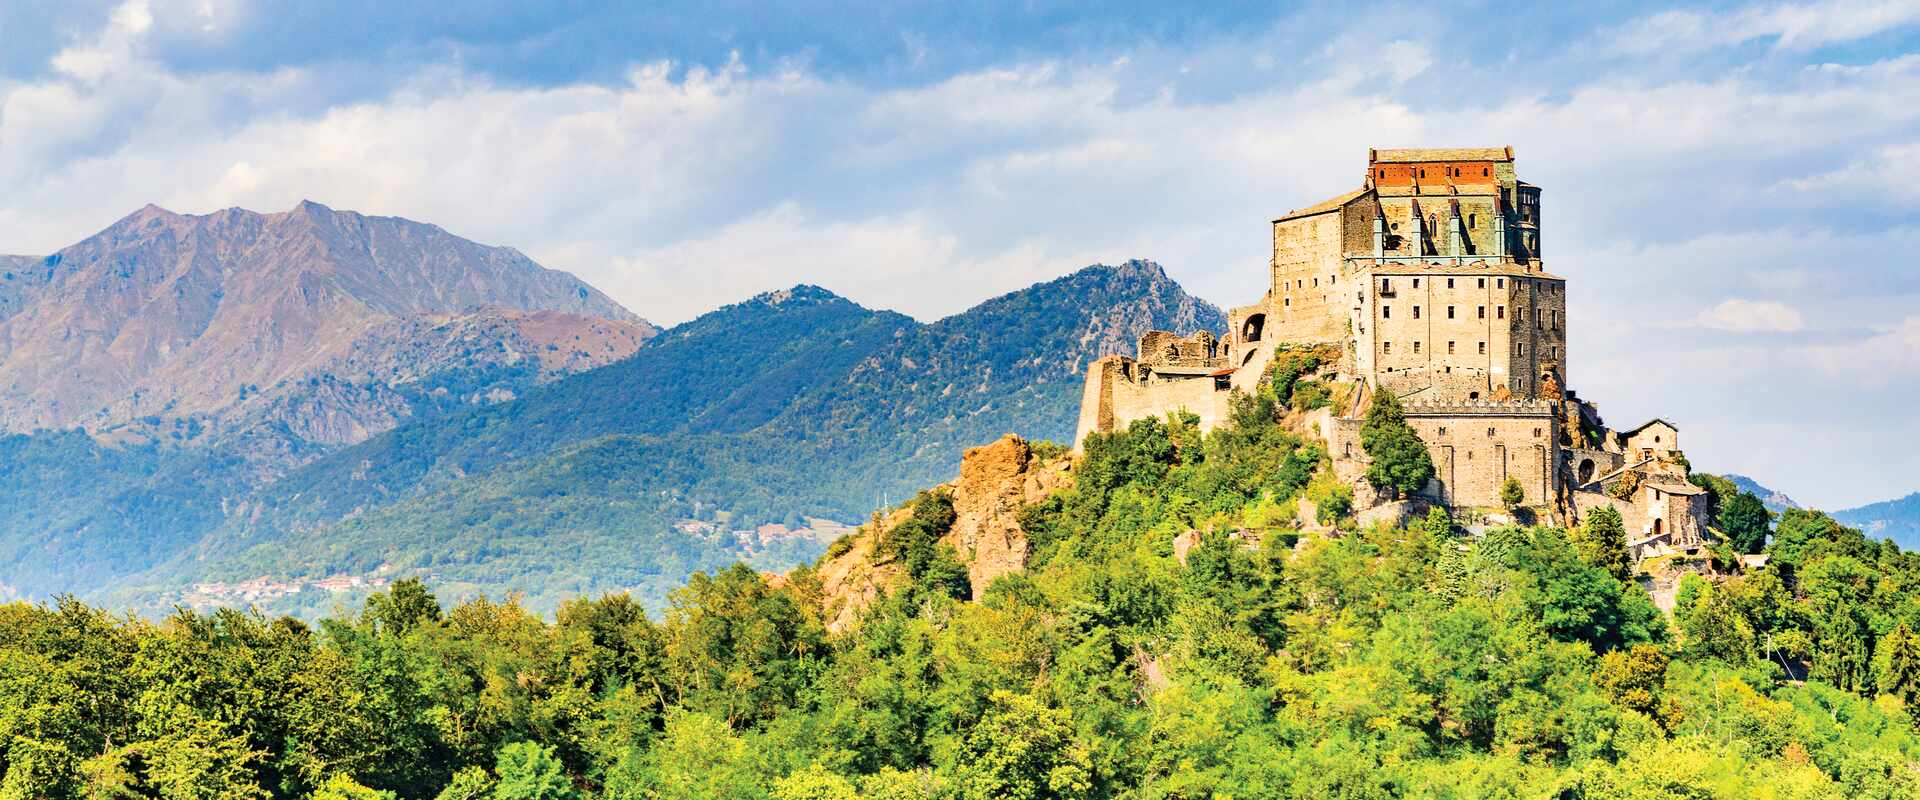 Discover Italy and Switzerland by small group tour